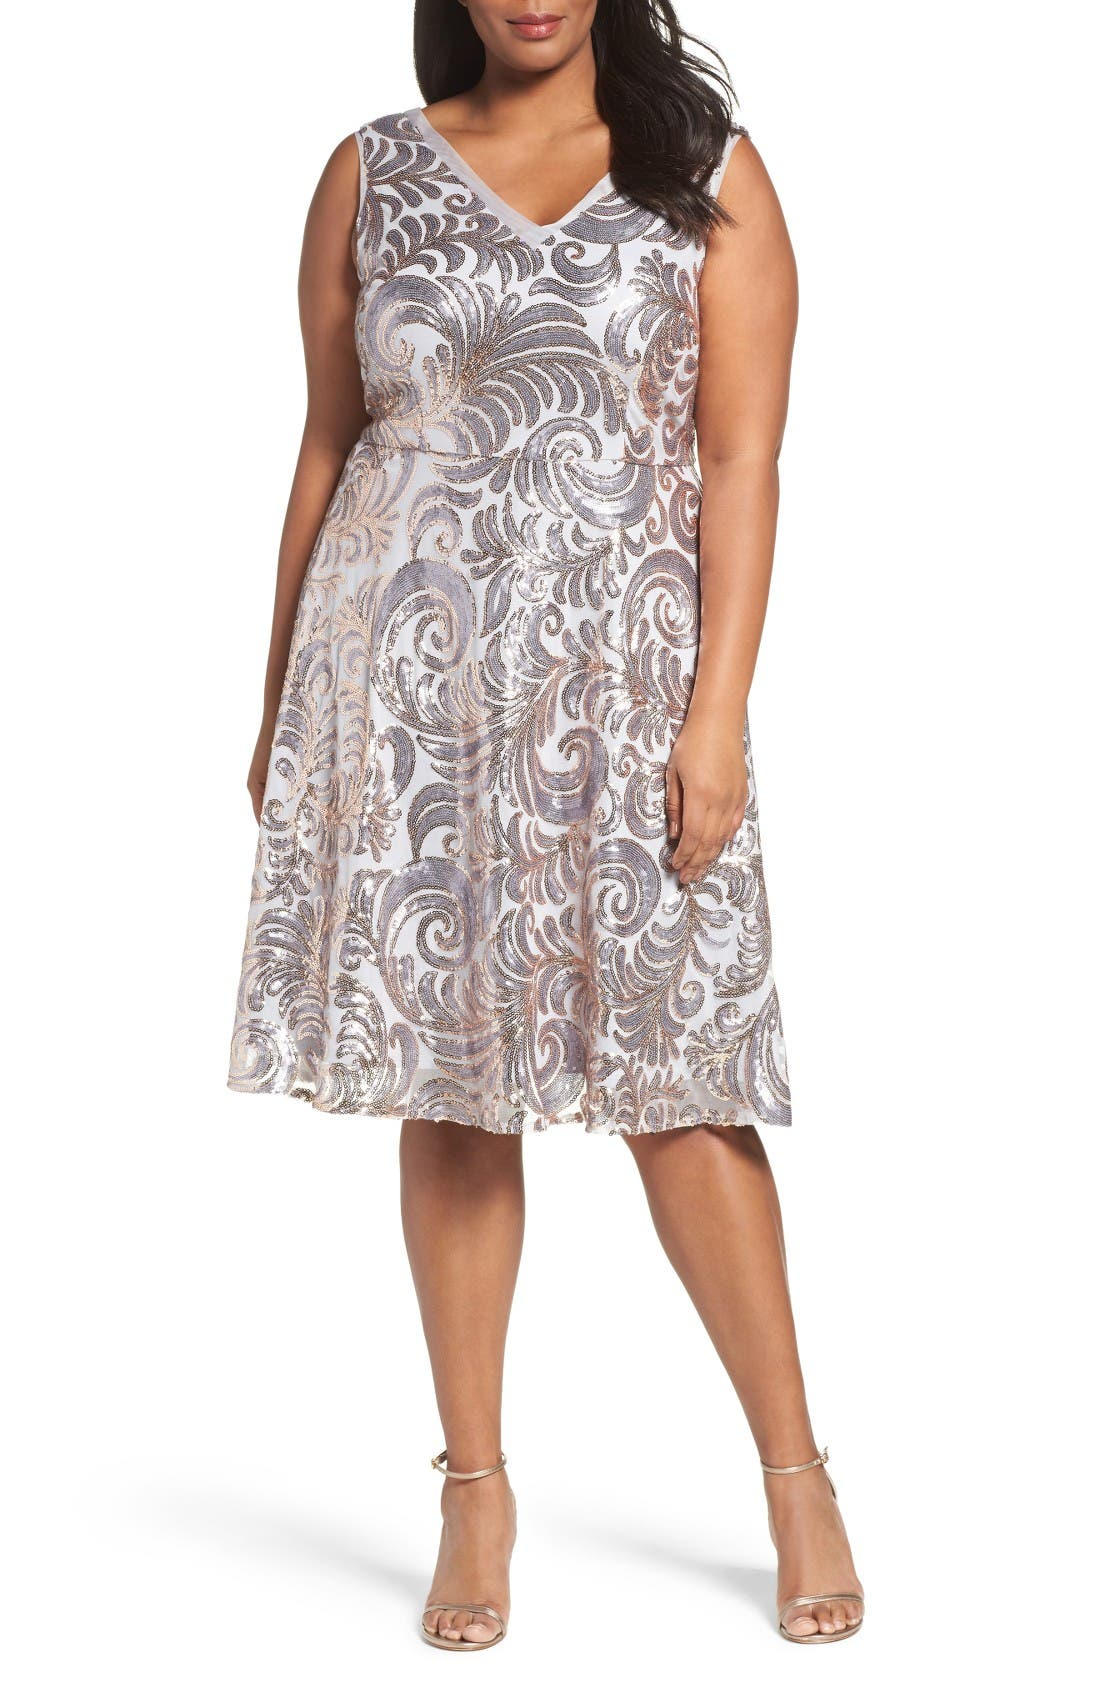 BRIANNA Sequin Fit & Flare Dress